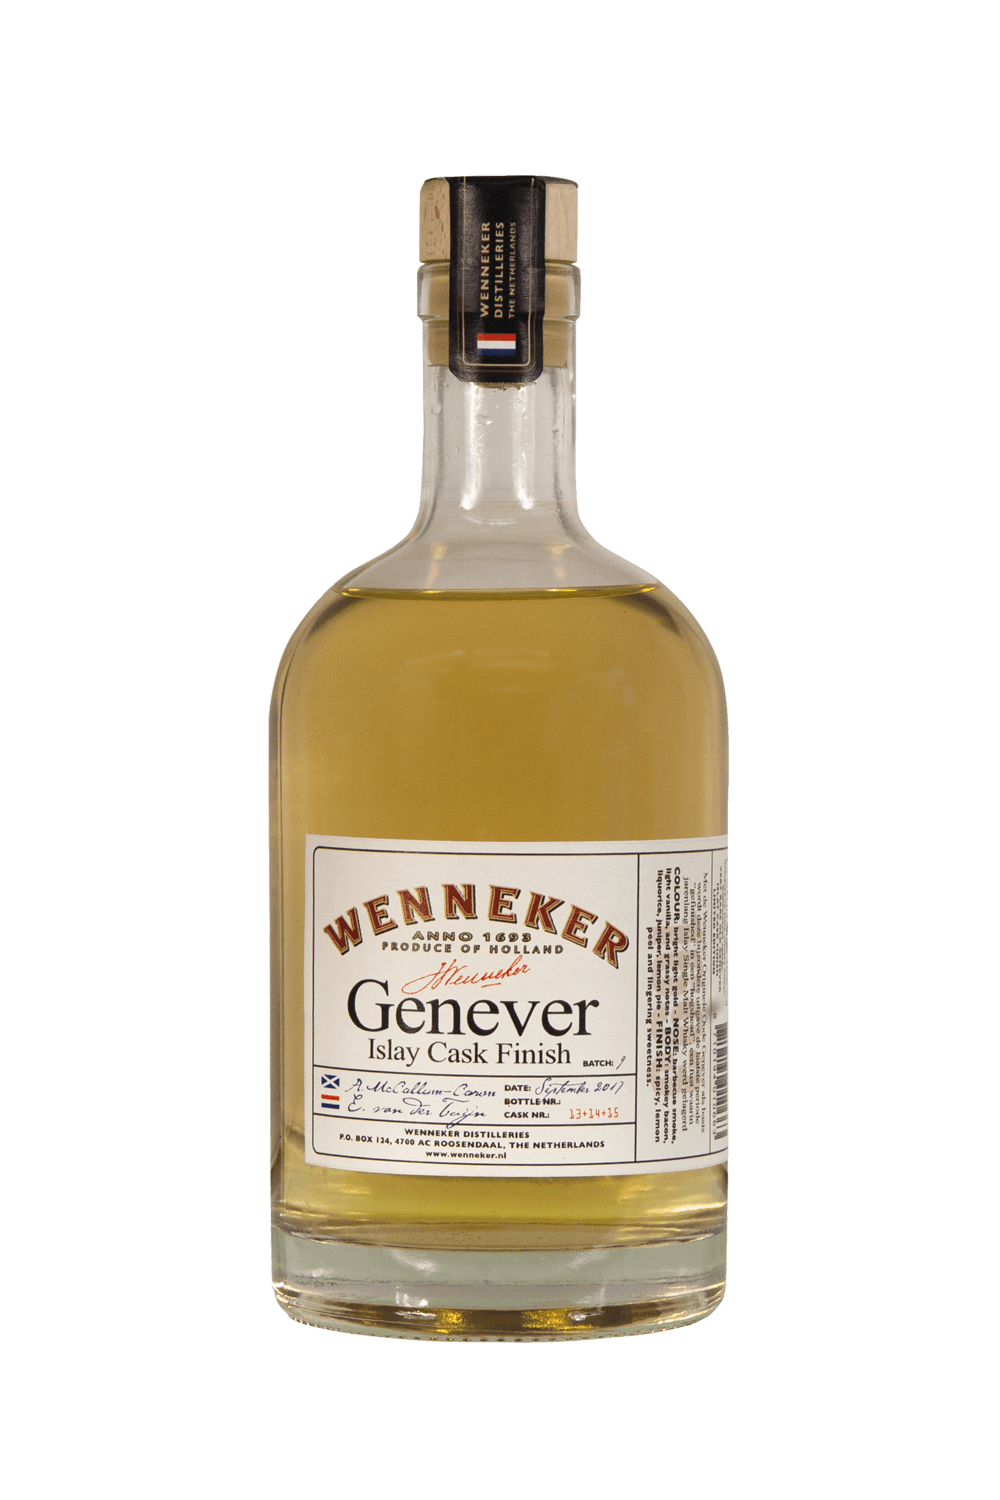 Wenneker Islay Cask Finish